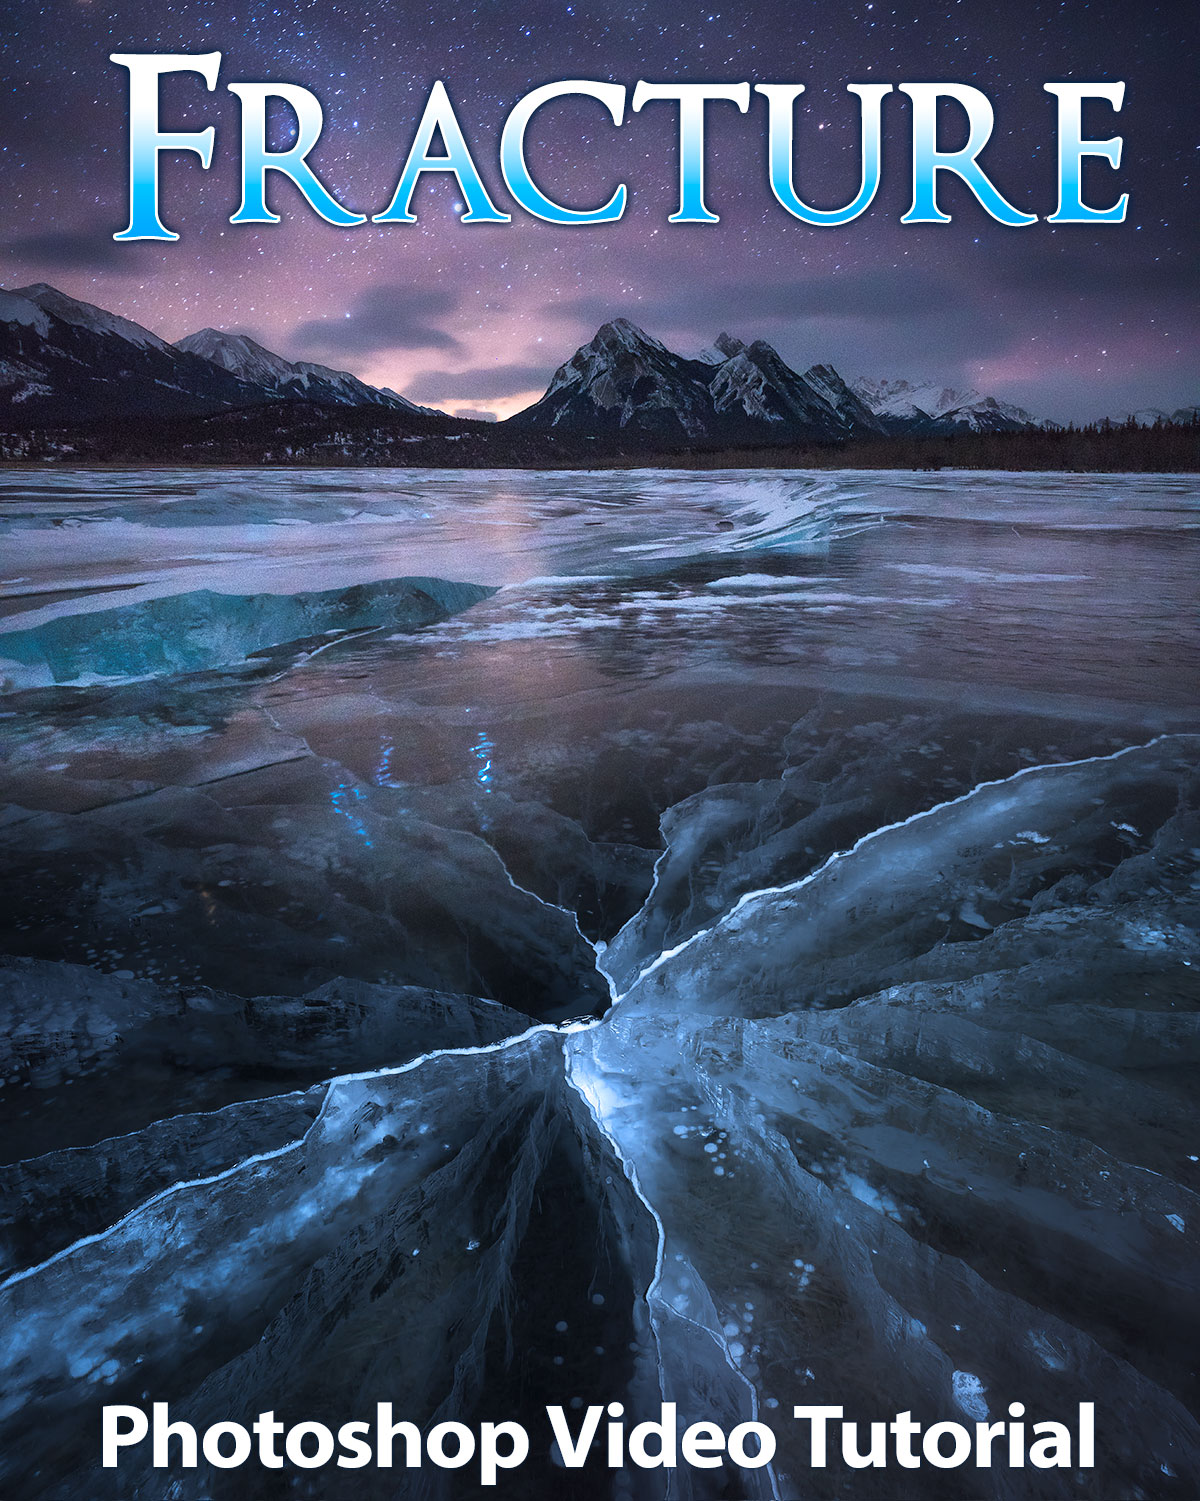 'Fracture' - Photoshop Video Tutorial